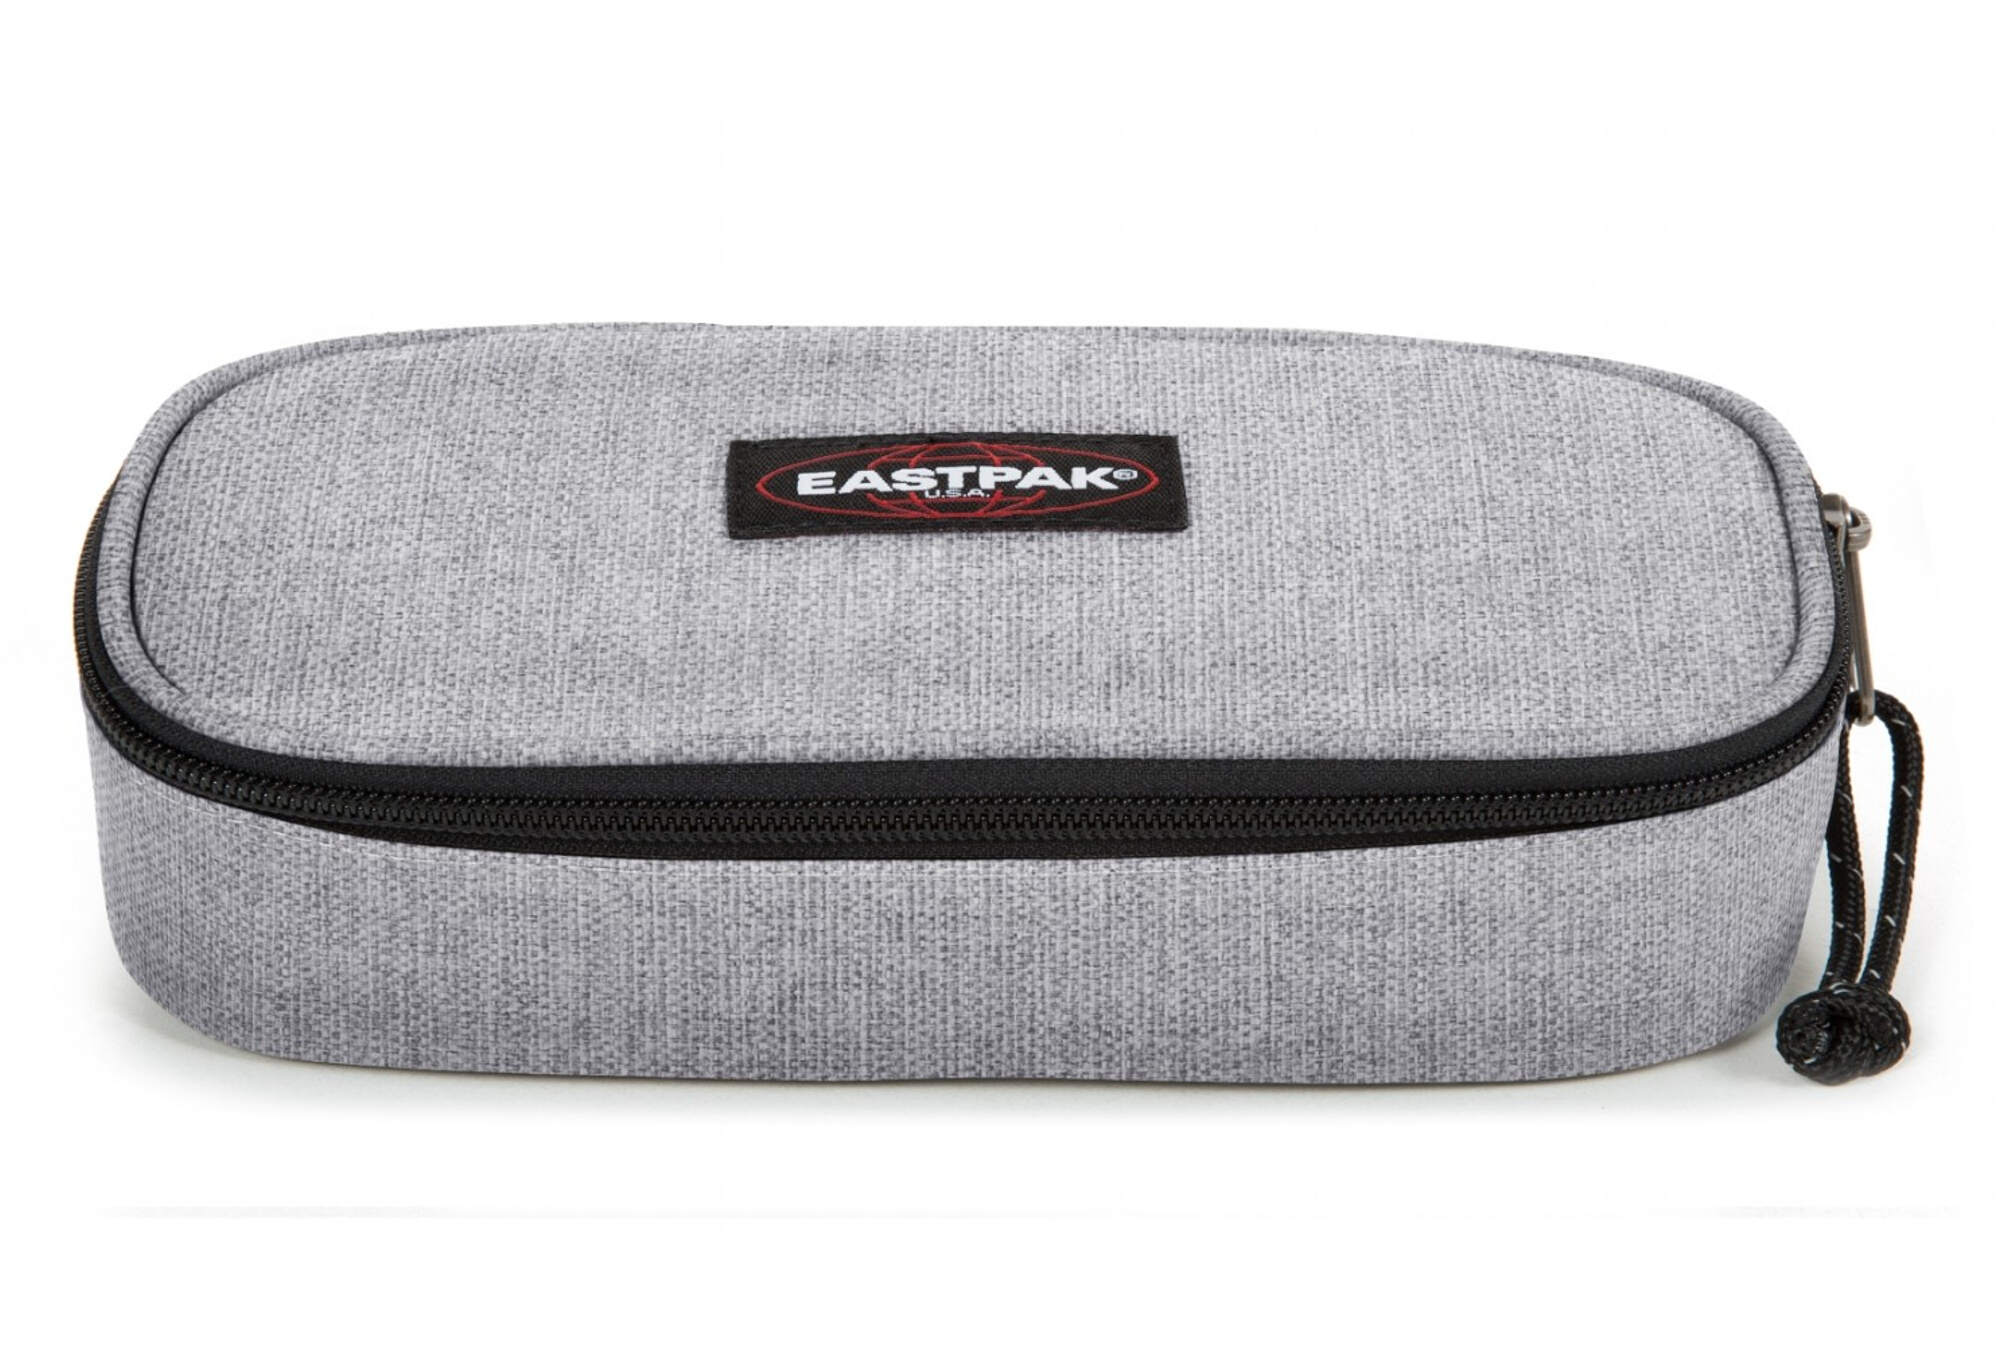 Trousse Eastpak Oval Sunday Grey gris r0Cdl0